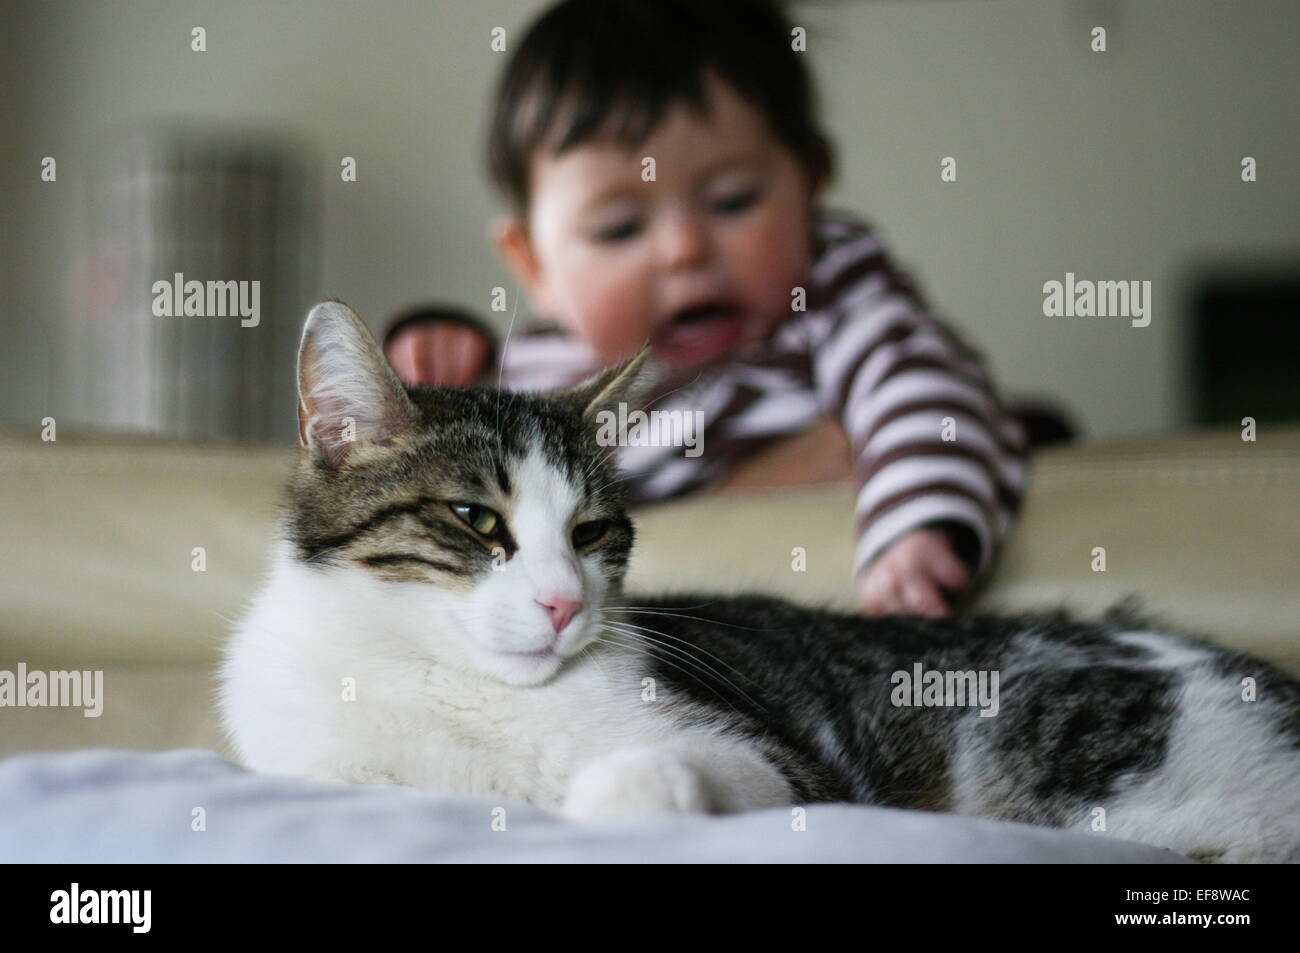 Baby (6-11 months) trying to catch cat tail - Stock Image